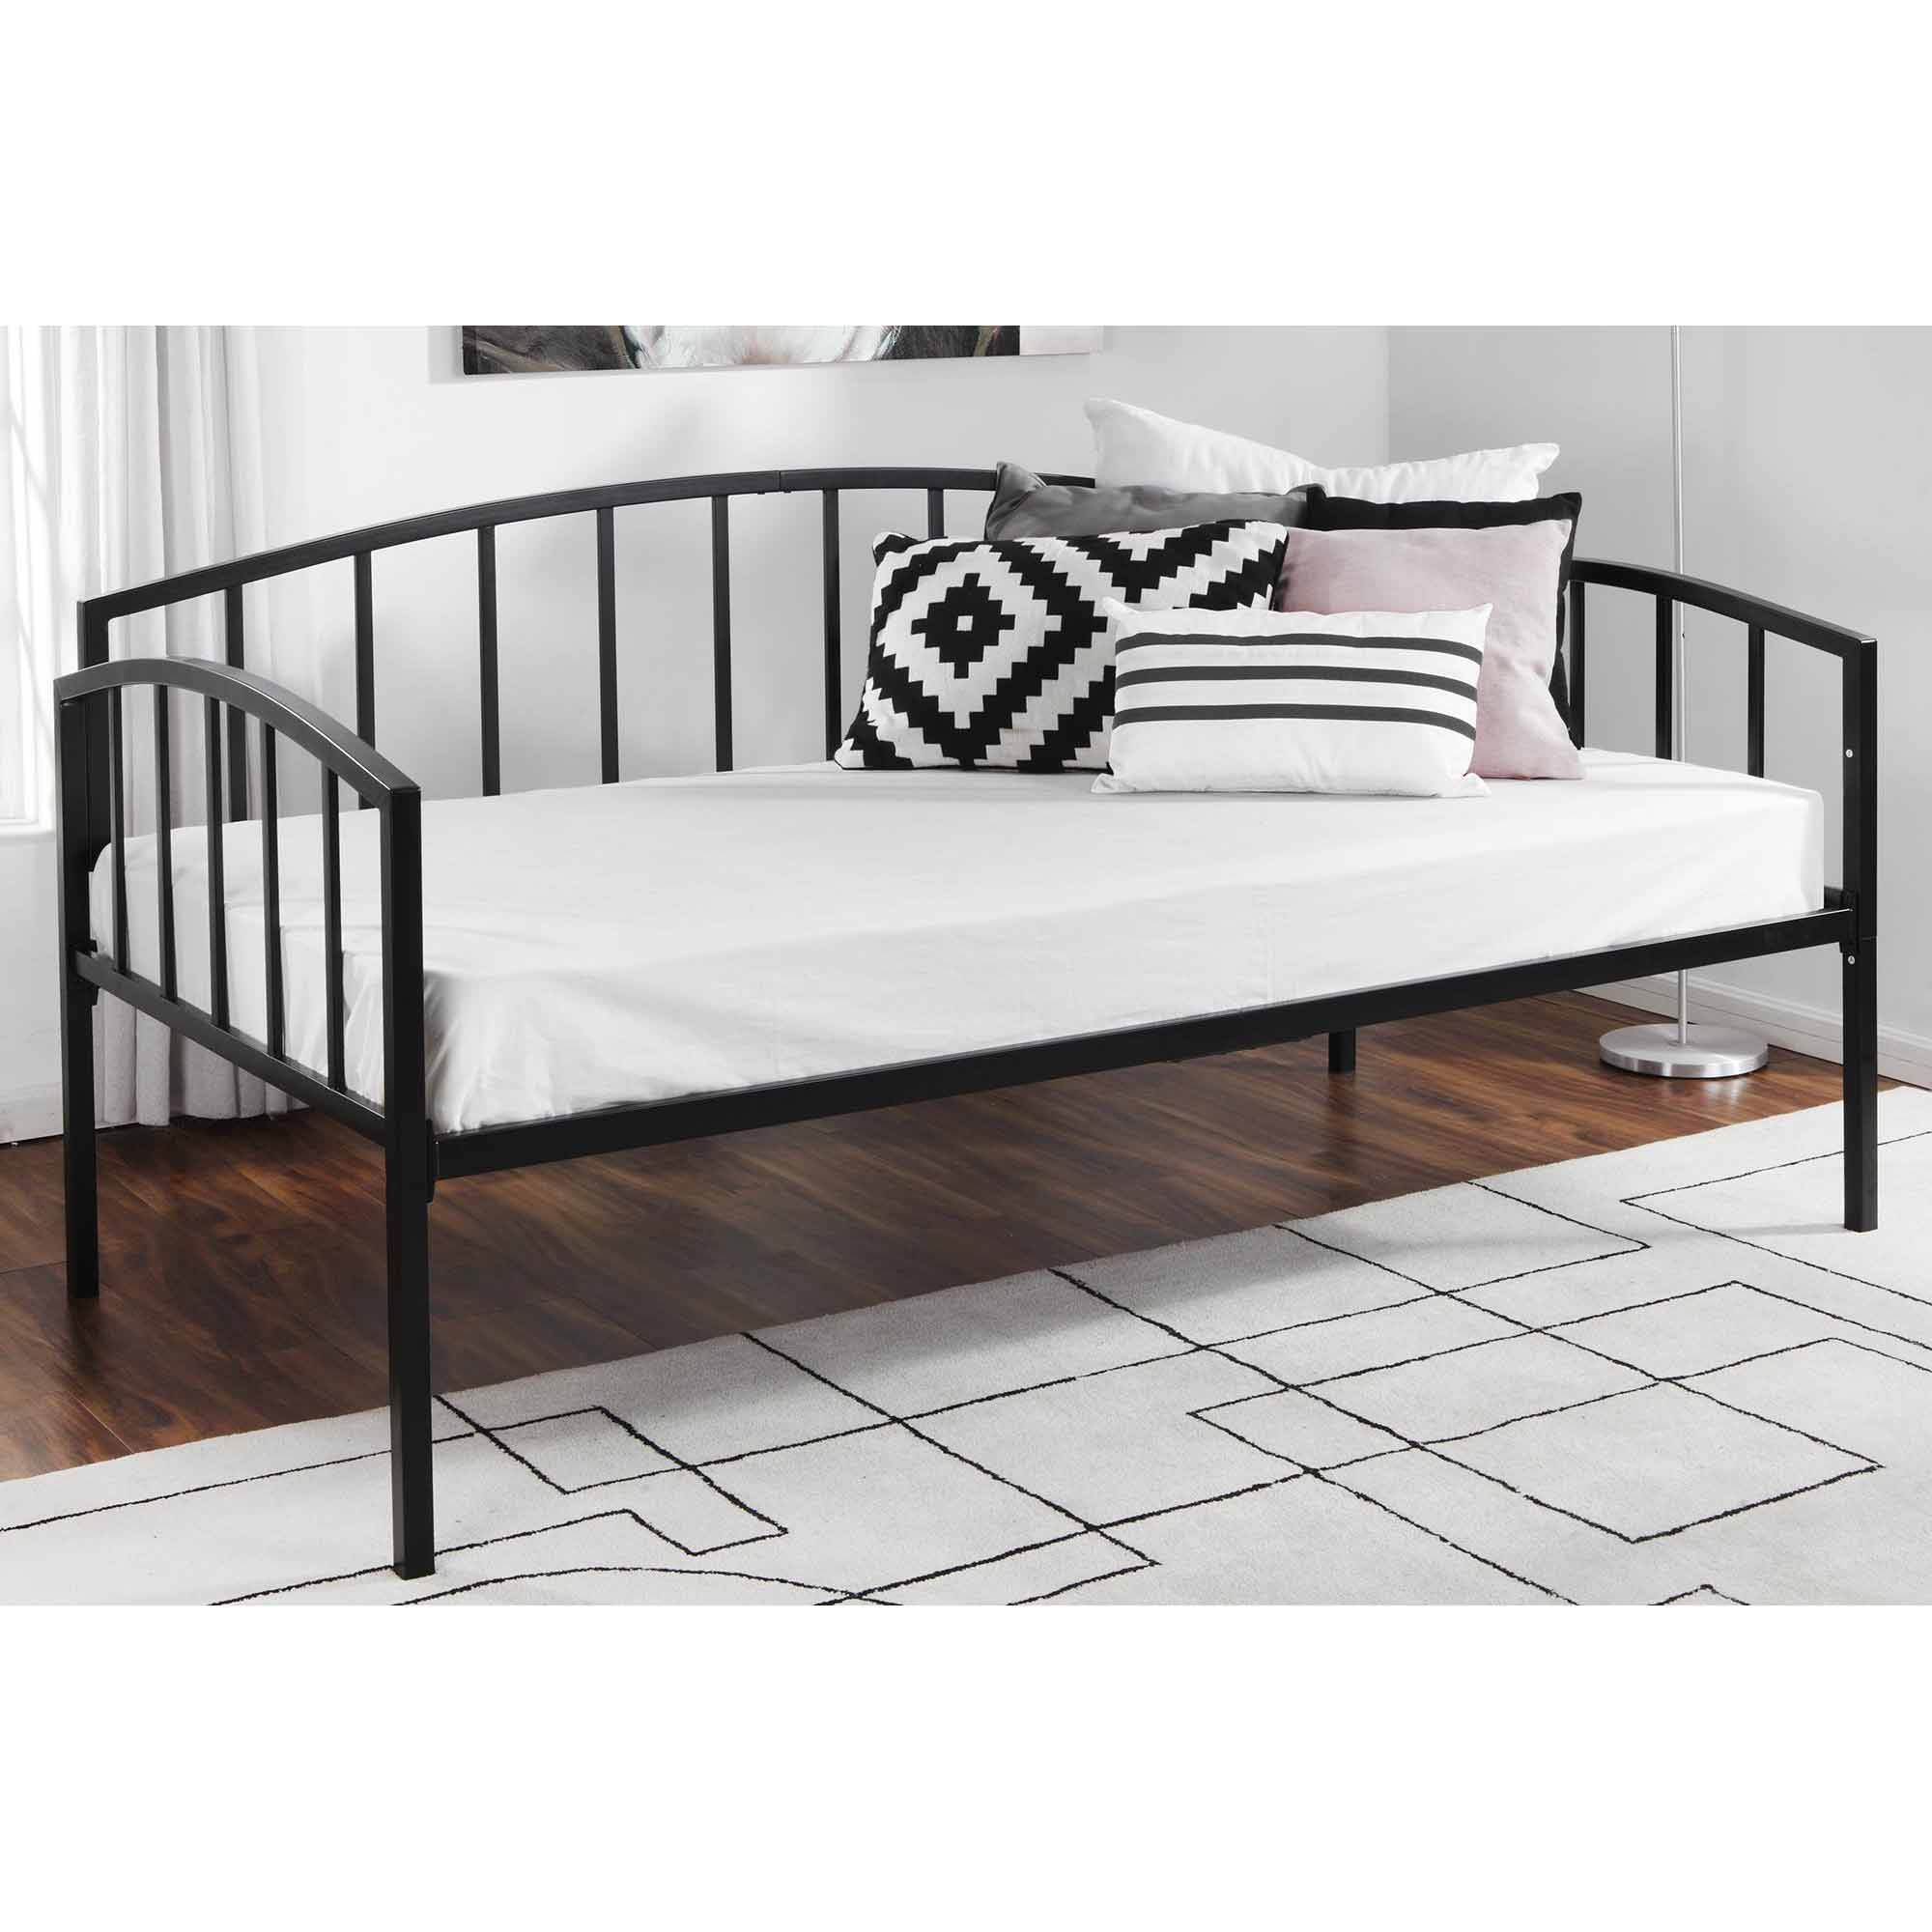 Uncategorized : Modern Iron Bed Sofa Daybed Contemporary Day Beds regarding Sofa Day Beds (Image 30 of 30)